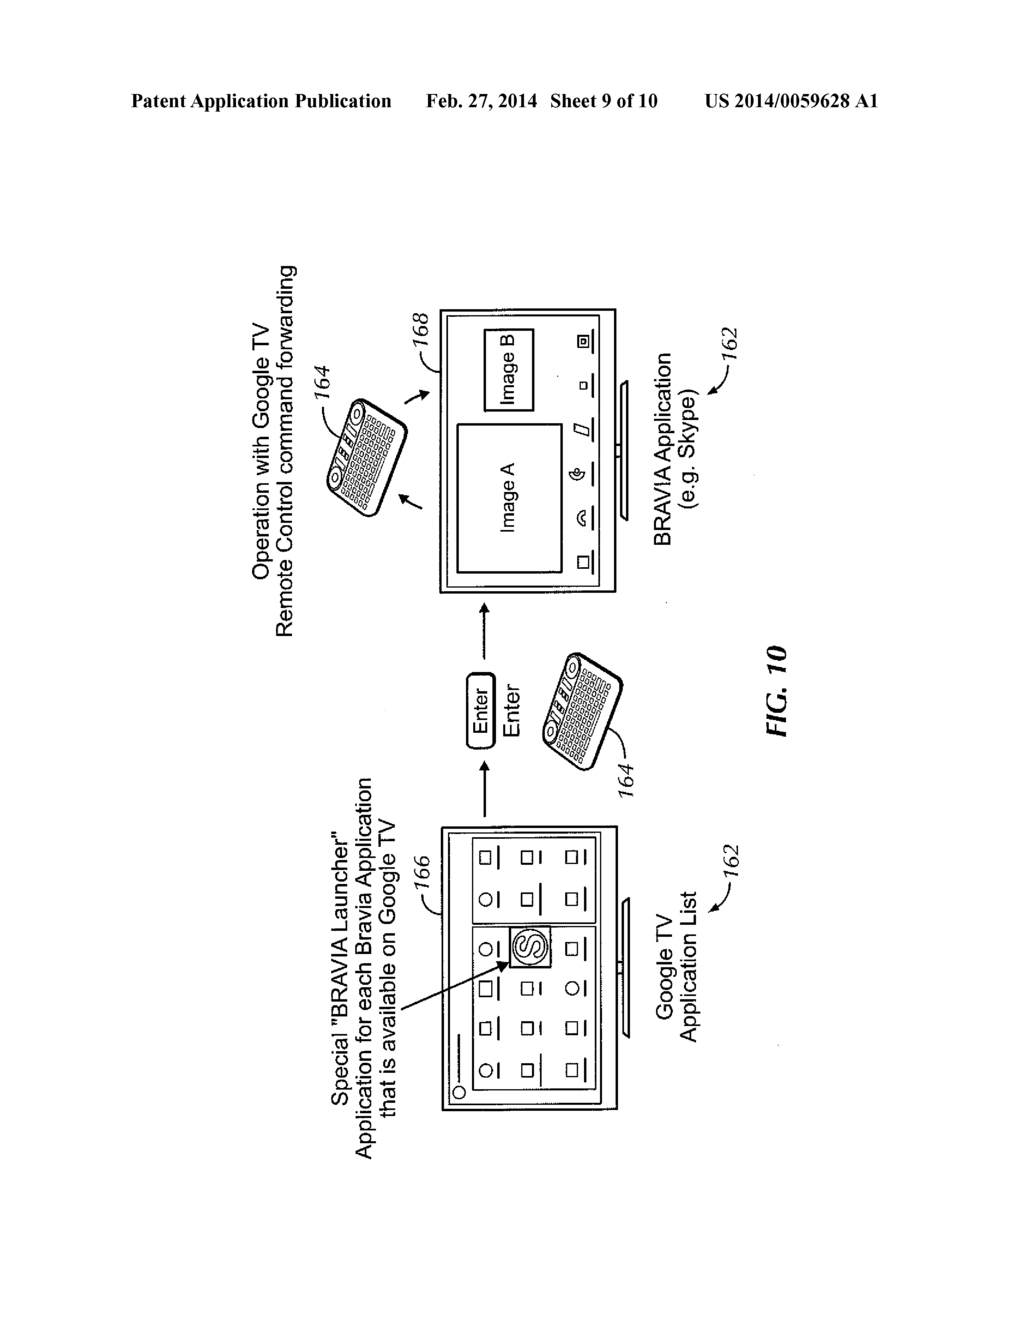 internet tv module for enabling presentation and navigation of non-native  user interface on tv having native user interface using either tv remote  control